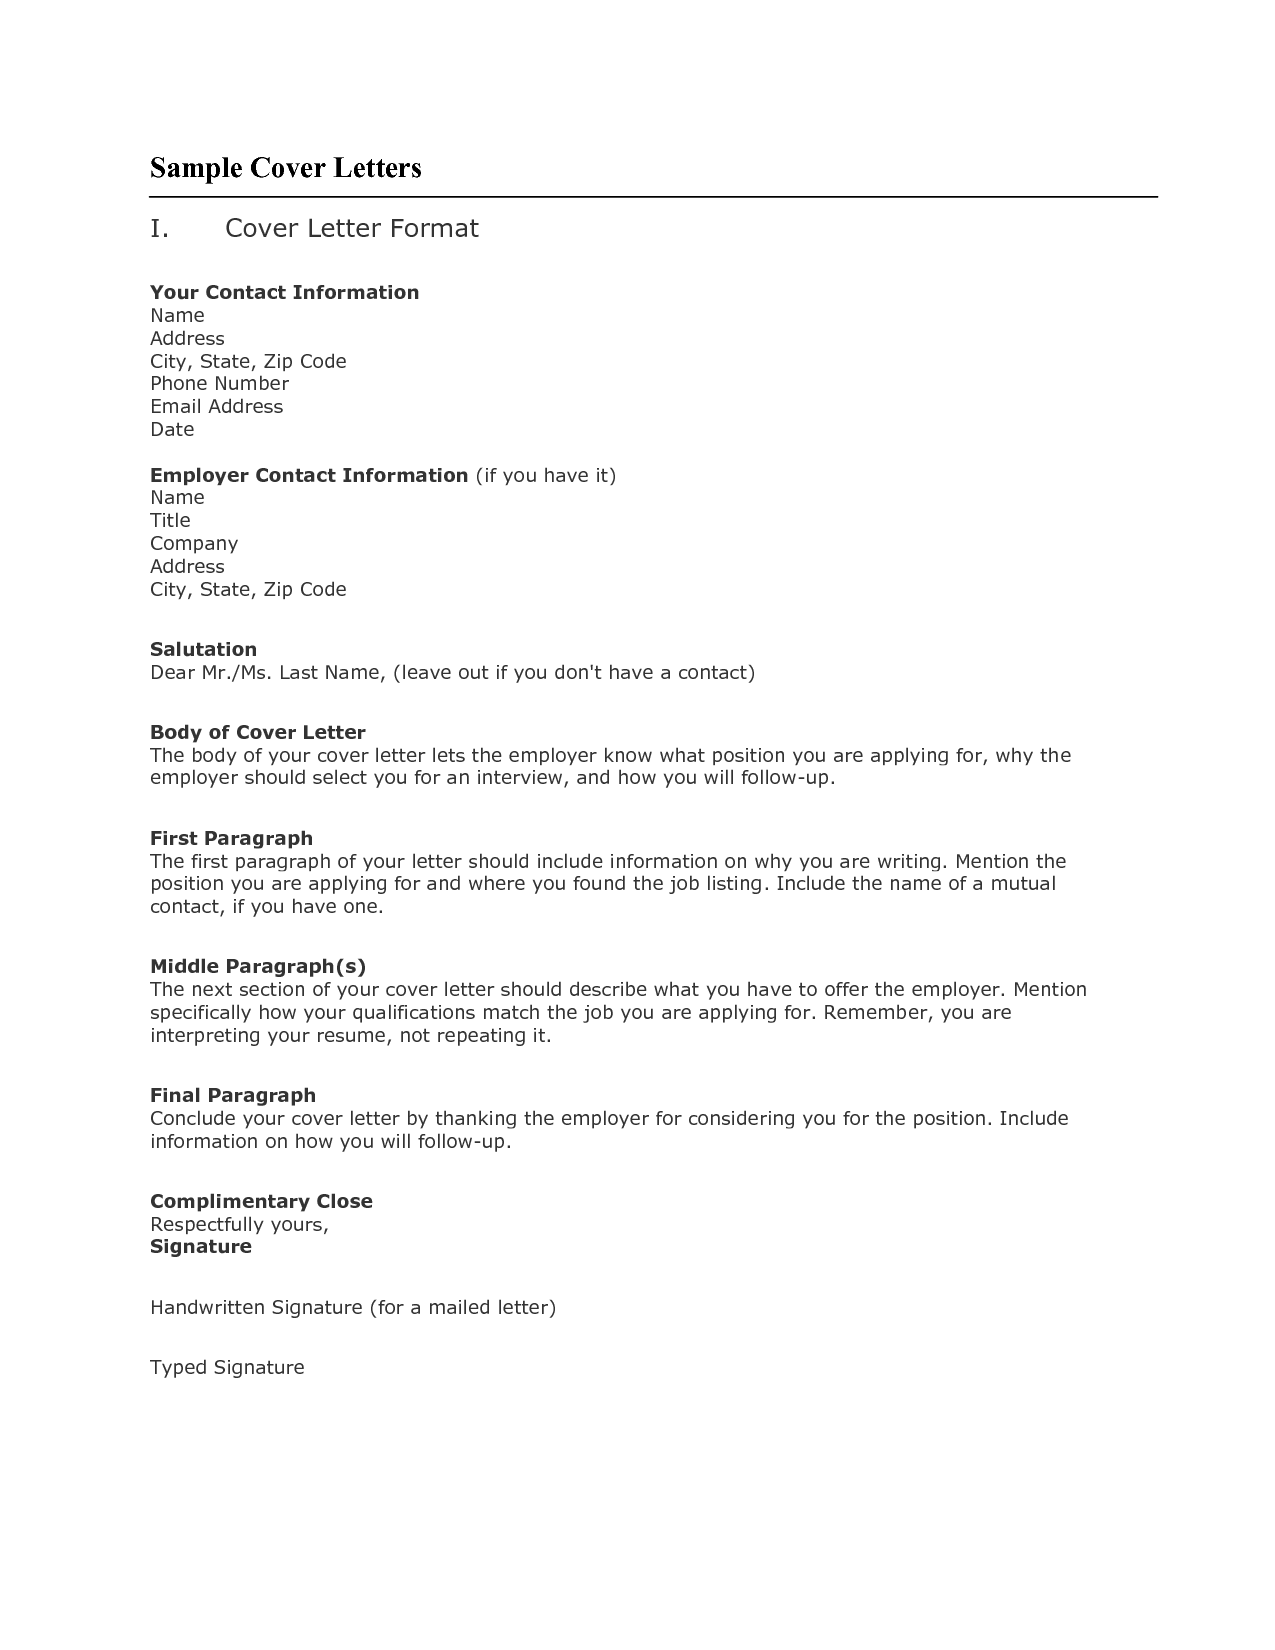 Sample cover letter job medical copywriter application sample cover letter job medical copywriter application jianbochencom how start for examplesexamples madrichimfo Gallery